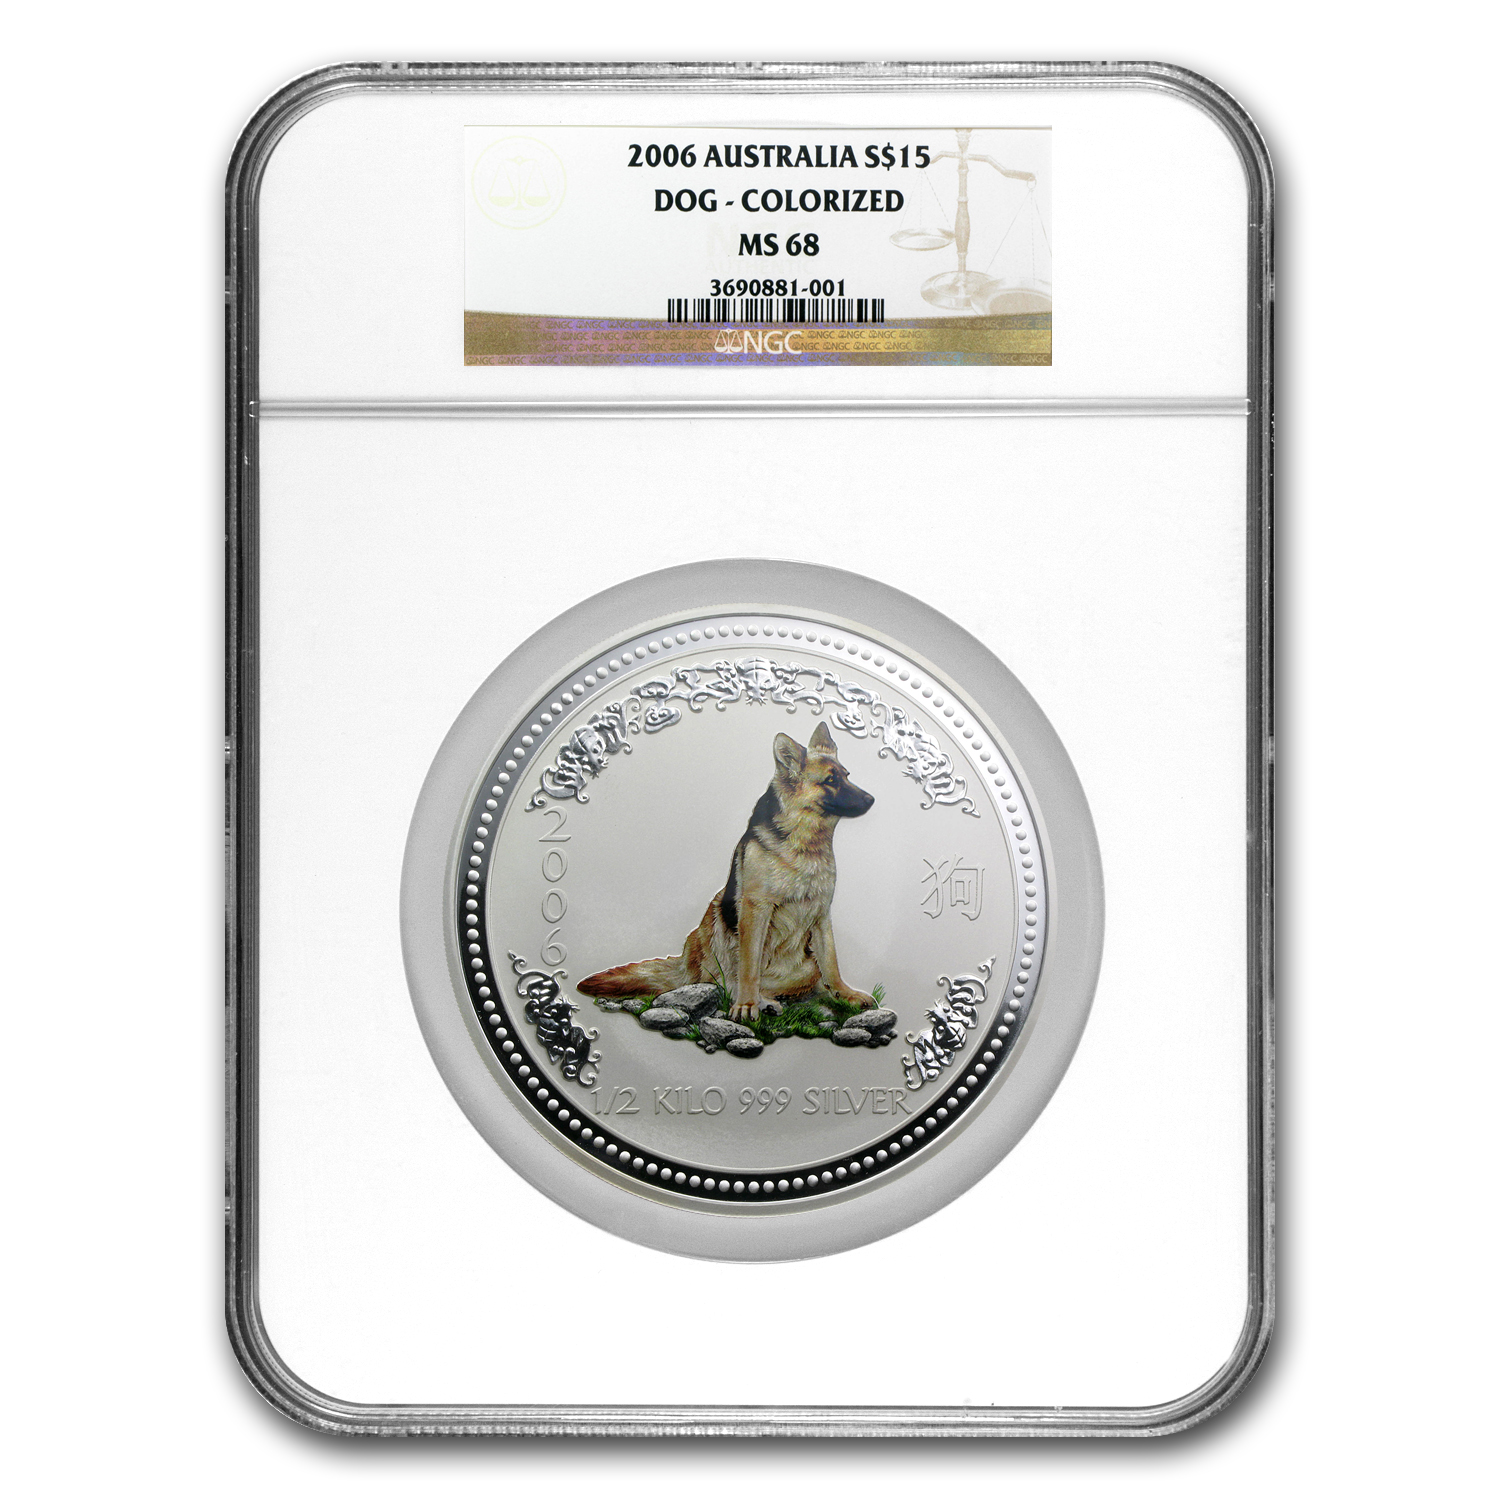 2006 1/2 kilo Silver Lunar Year of the Dog Colorized NGC MS-68